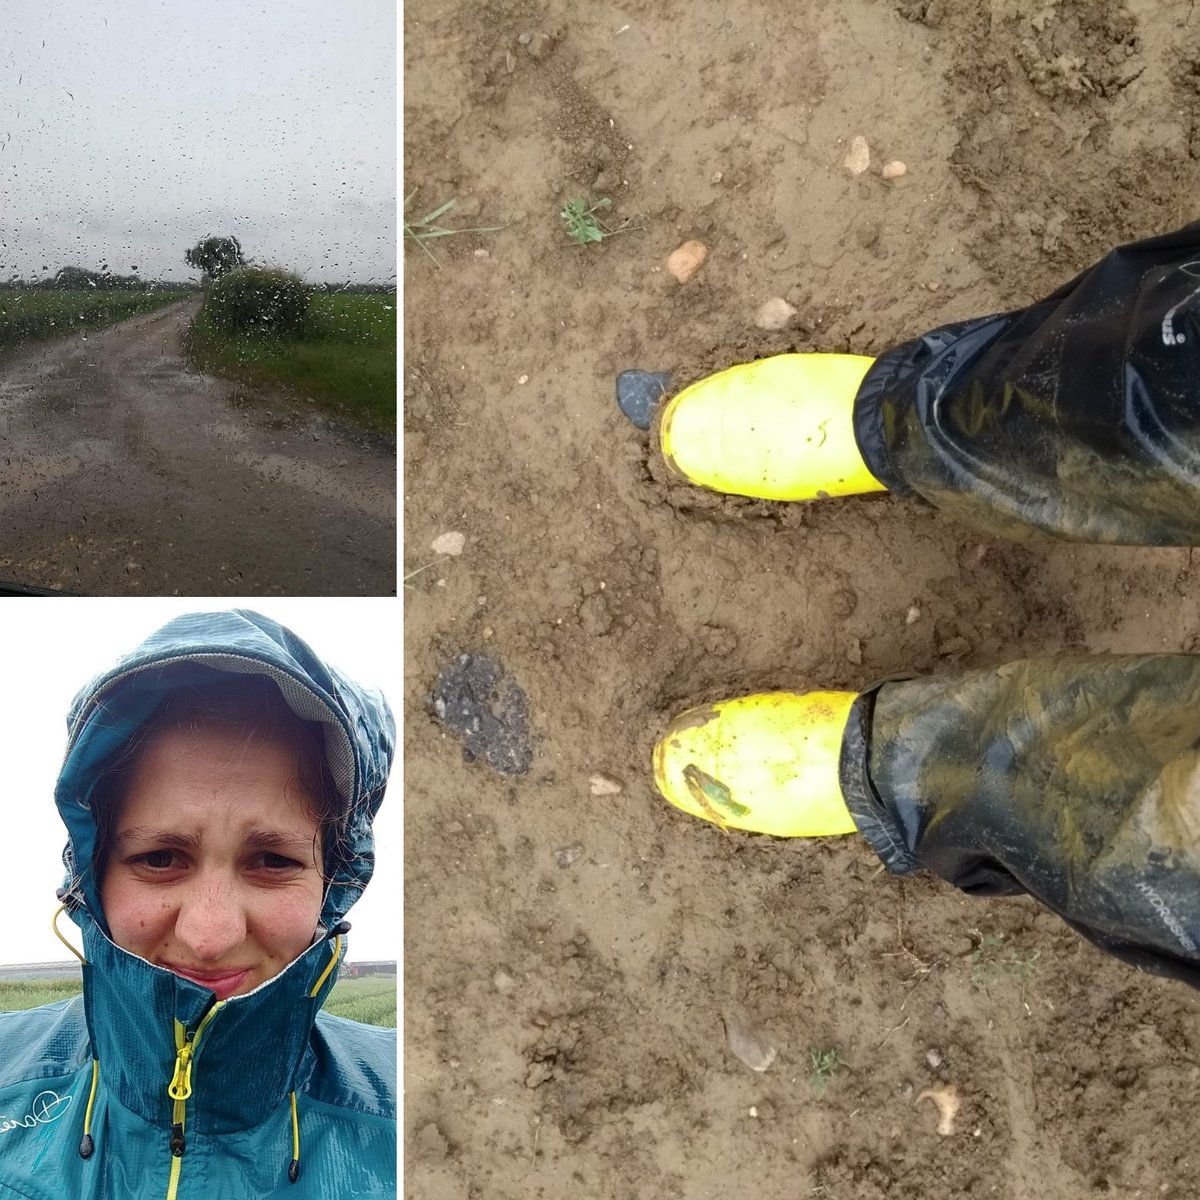 Photo summary of last week's field work. Hoping for less rain now I'm in Aberdeenshire but either way the #aphid hunt continues 👩‍🌾 https://t.co/ril1uN7Bqd